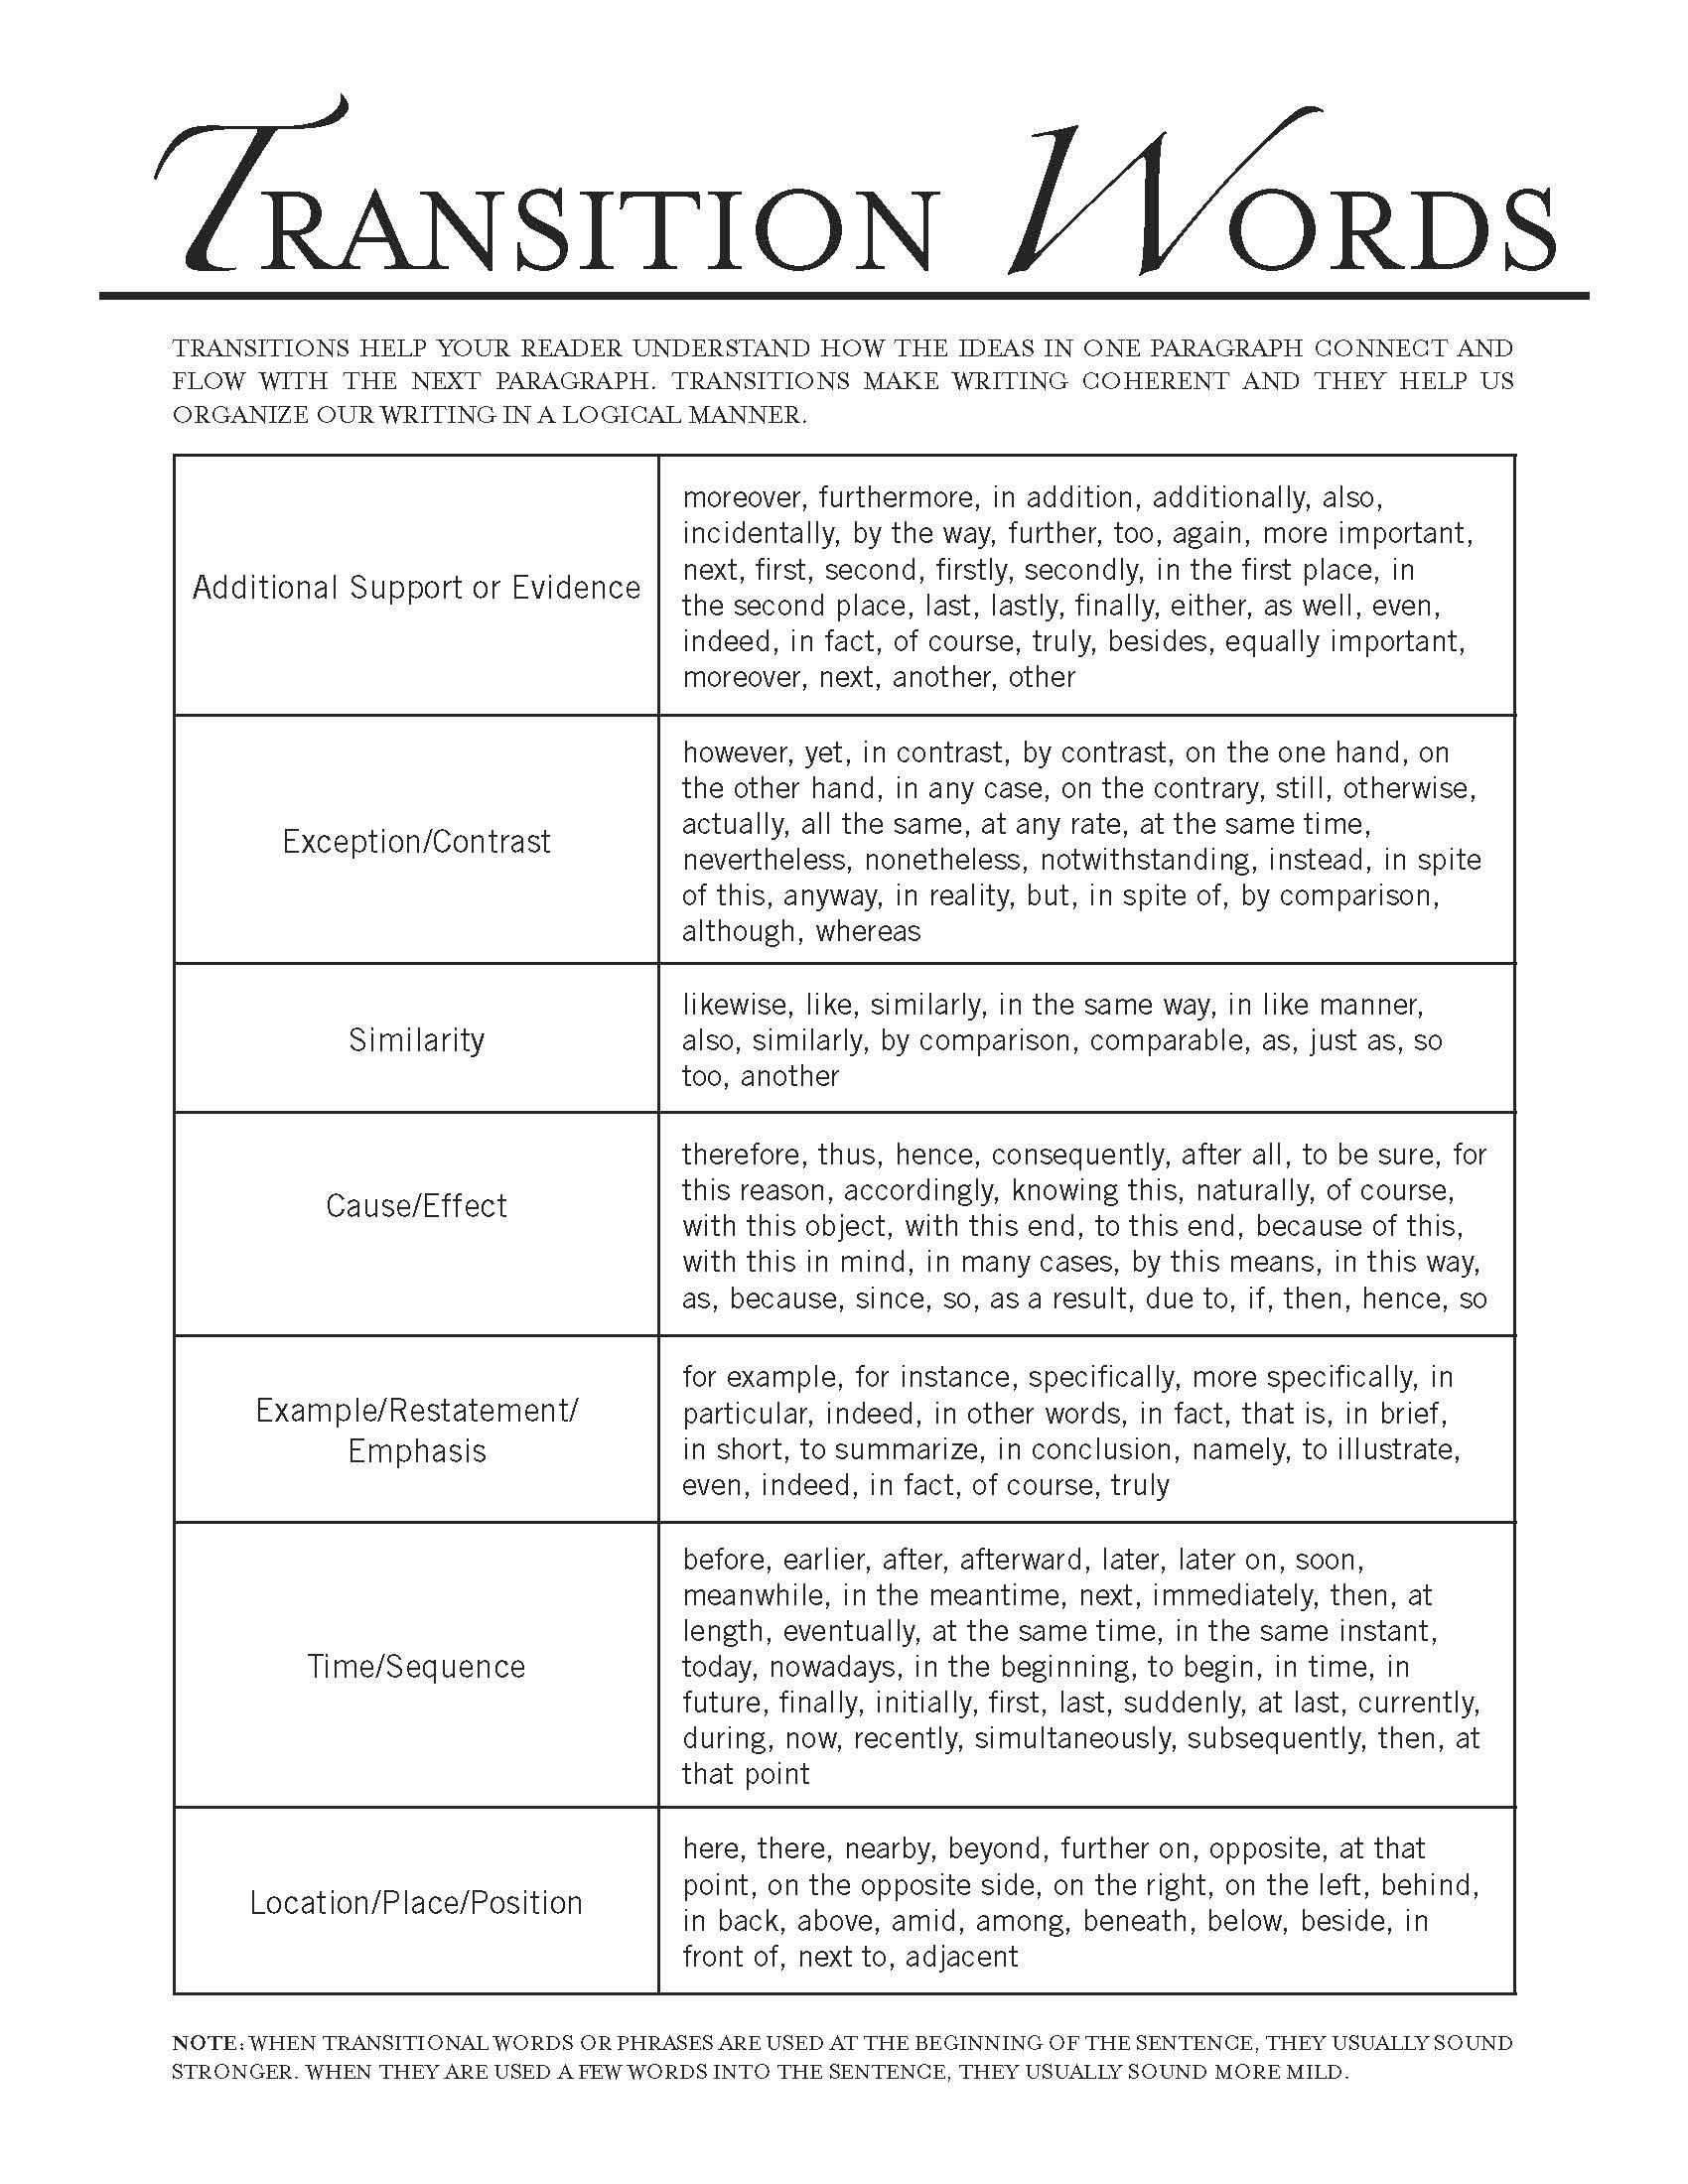 003 Essay Transitions Archaicawful Transition Sentences Between Paragraphs Words List Full